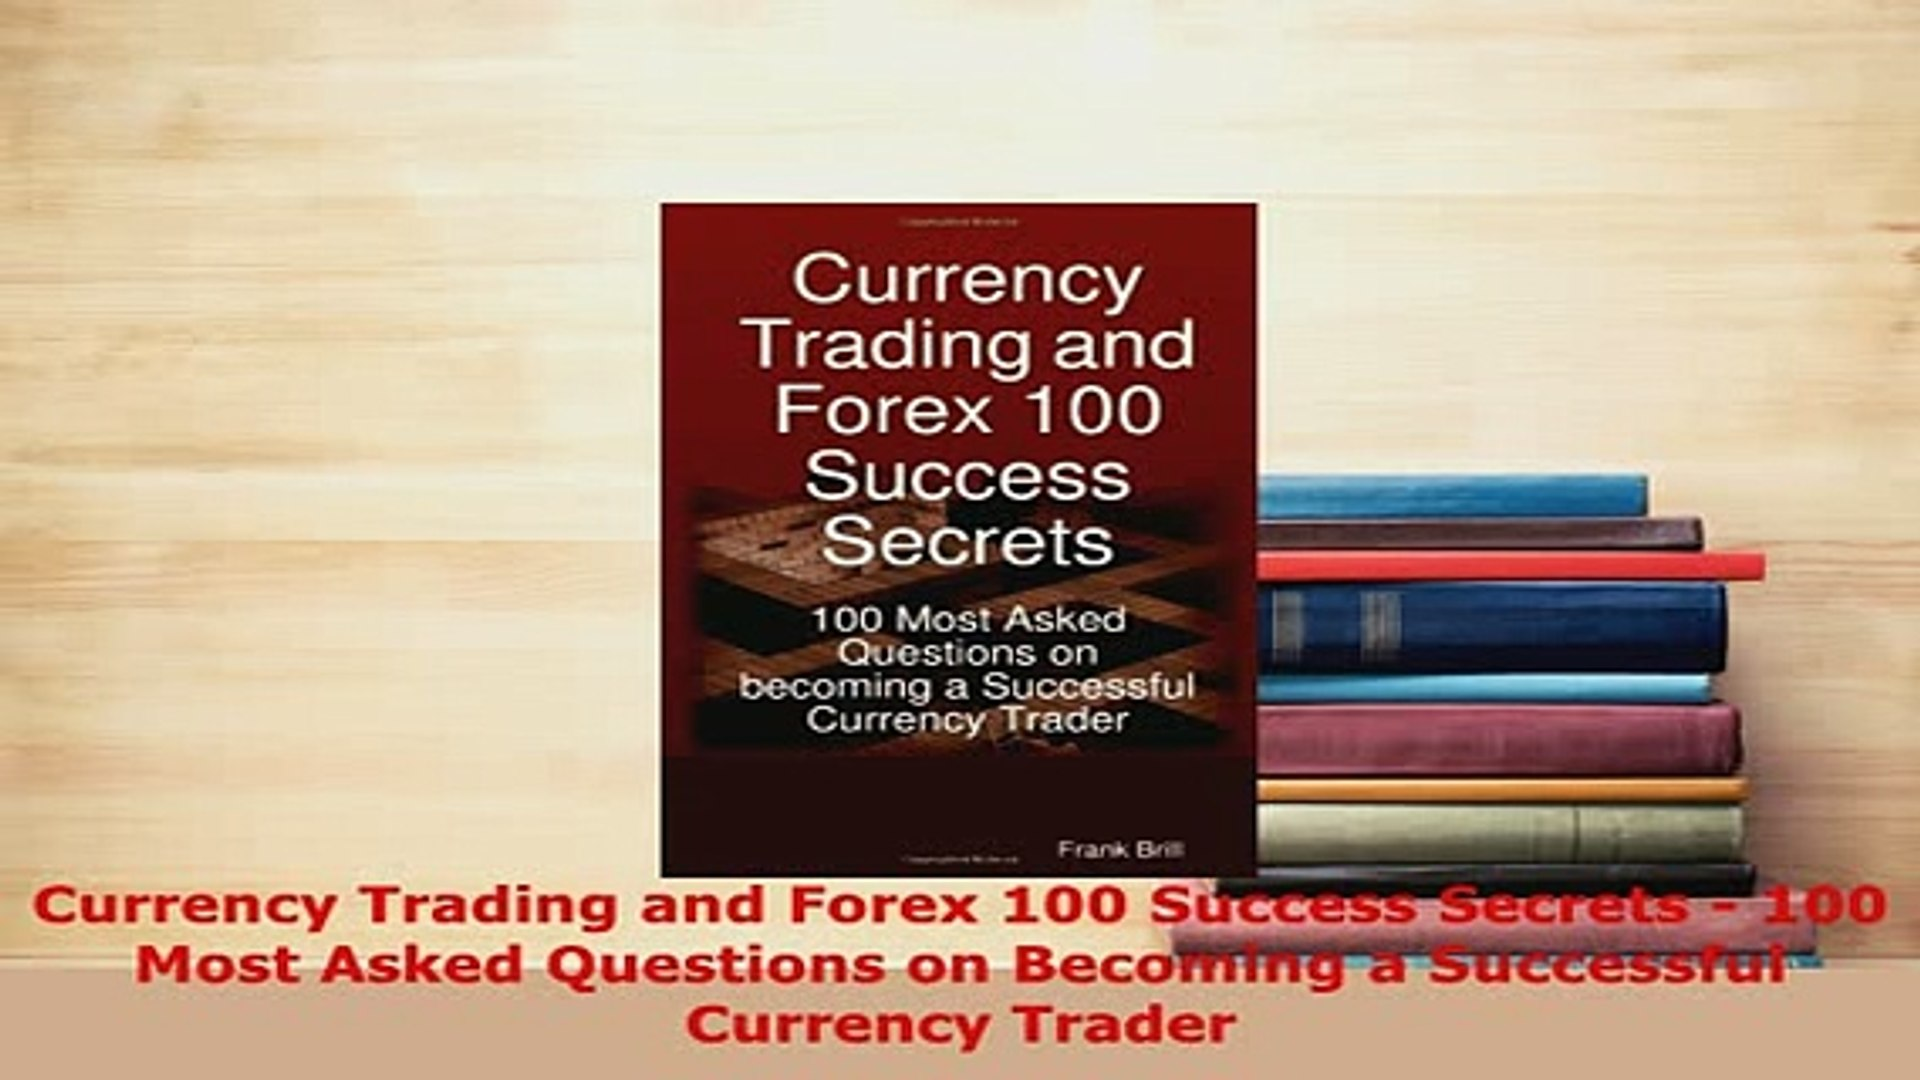 currency trading forex 100 success secrets